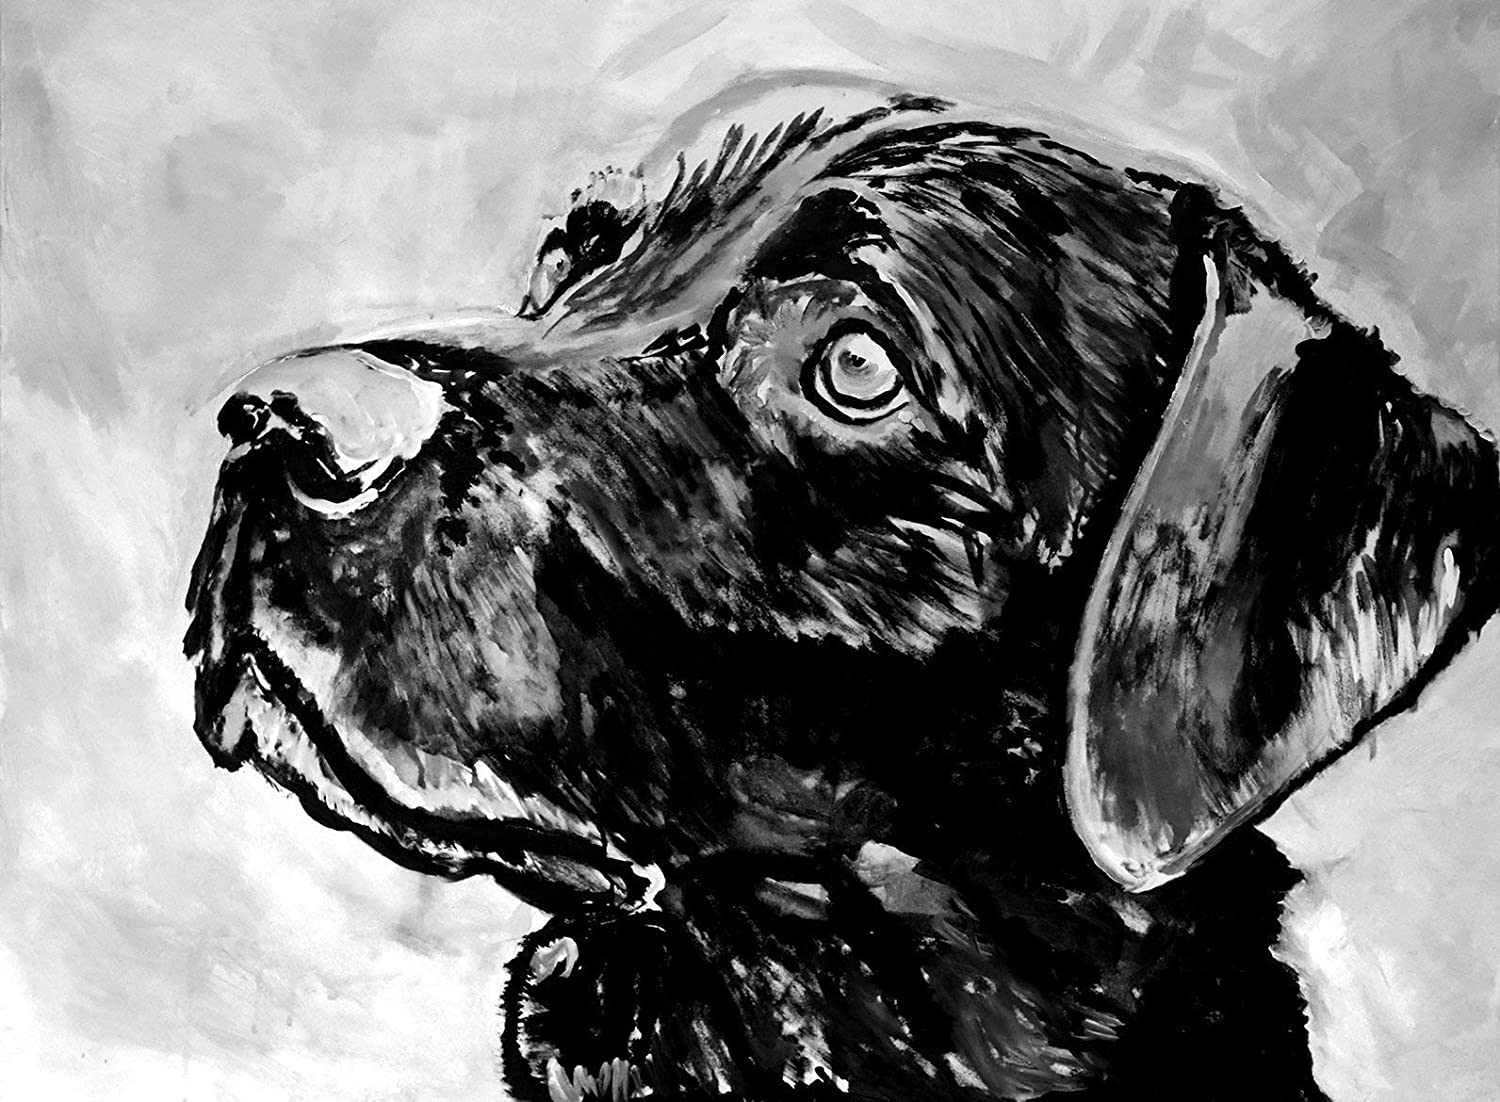 Labrador Retriever Dog Wall Art Print, Black Lab Artwork, Lab Owner Gift, Lab Dog Art, Black And White Decor, Labrador Dog Memorial Painting Picture Choice Of Sizes Hand Signed By Artist Oscar Jetson